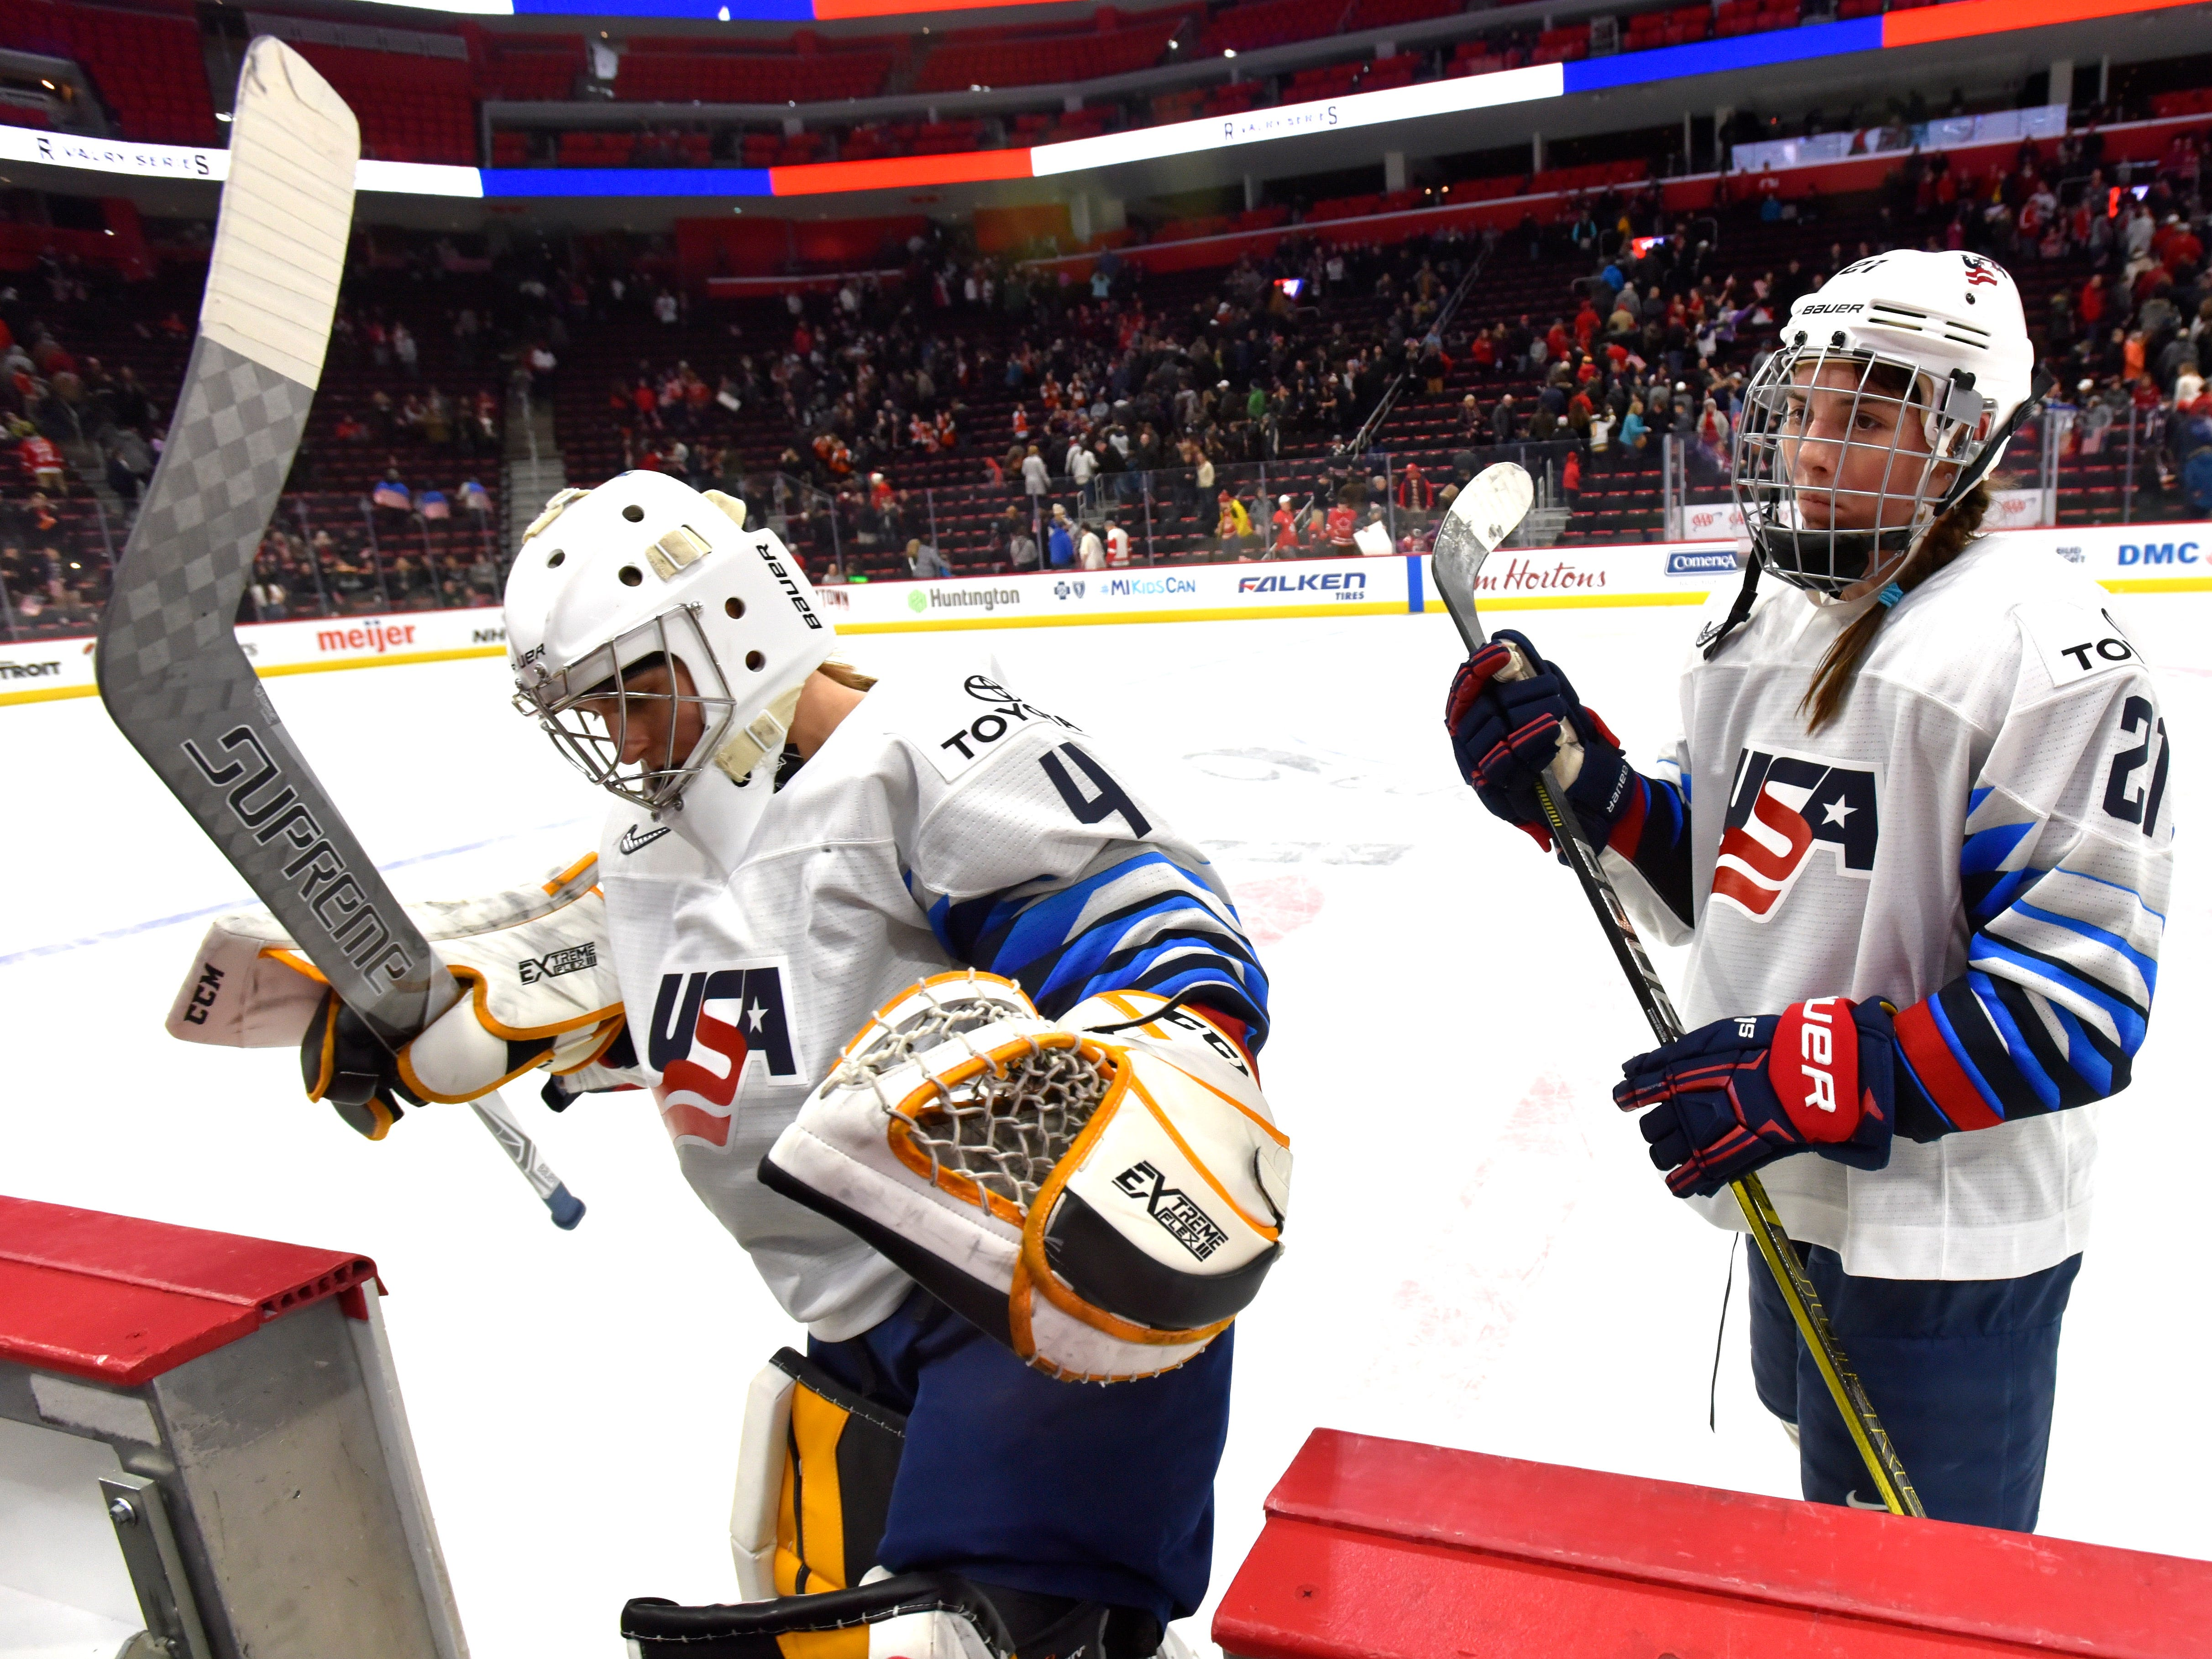 U.S. goalie Katie Burt(41) and teammate Hilary Knight(21) leave the ice after their 2-0 loss to Canada's National Women's Team.